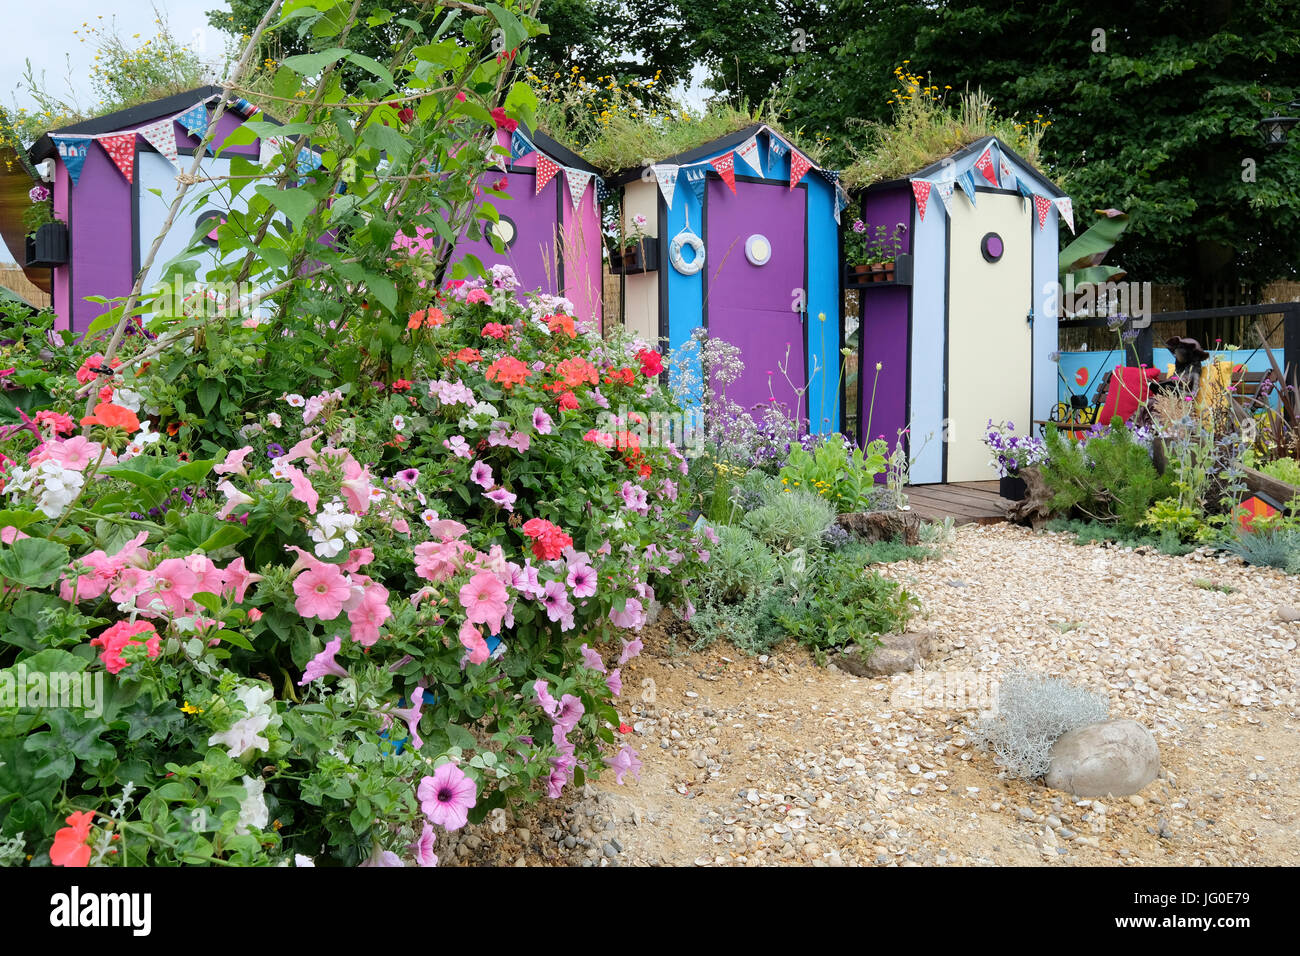 Hampton Court, England, UK. 3rd July, 2017. 'Fun on the Sea' show garden designed by Southend Youth Offending Service, Stock Photo